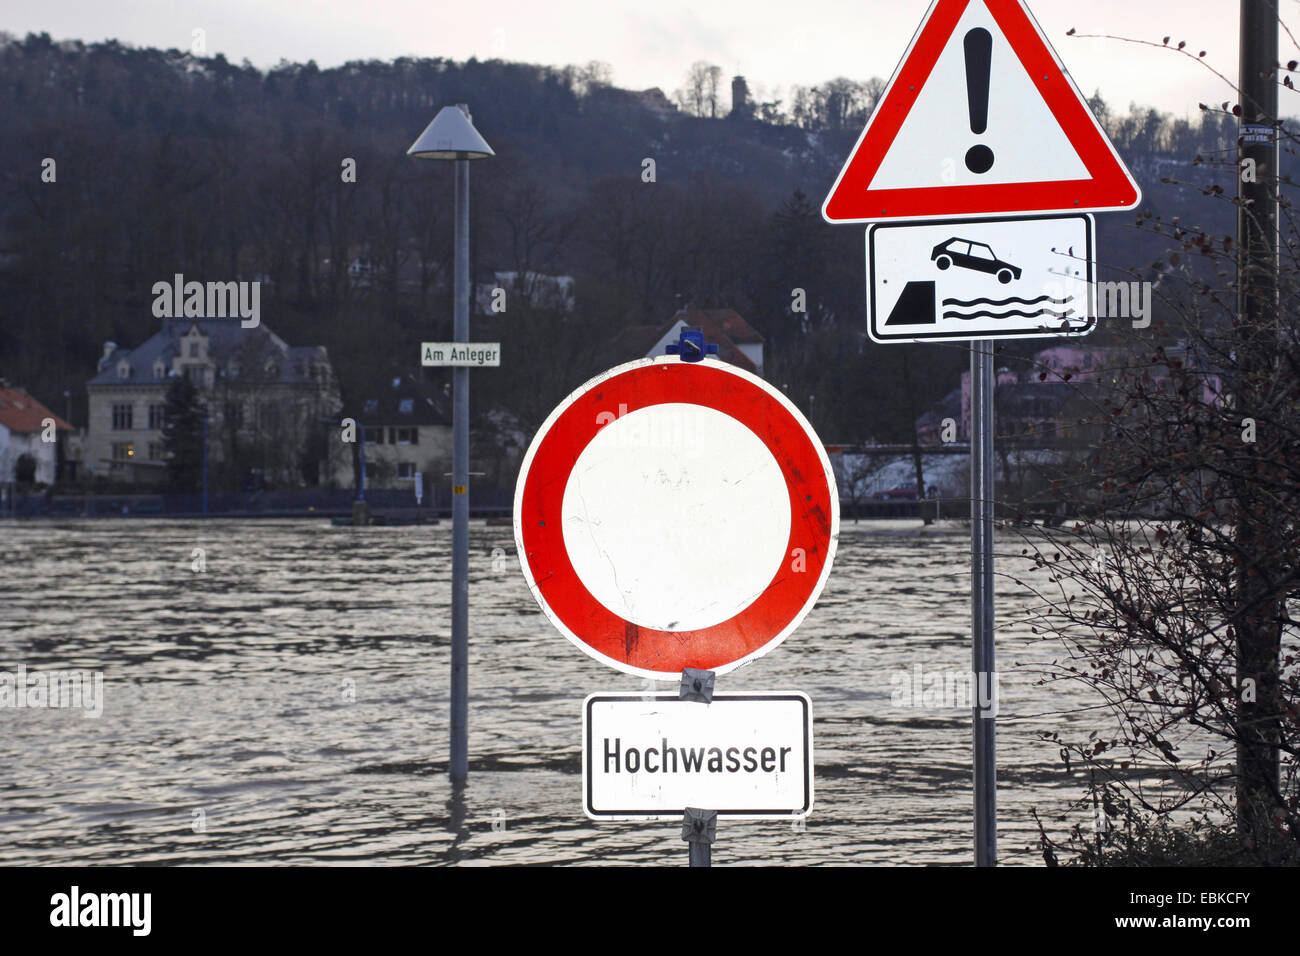 high water of Weser river, 'no through traffic' sign at river bank, Germany - Stock Image